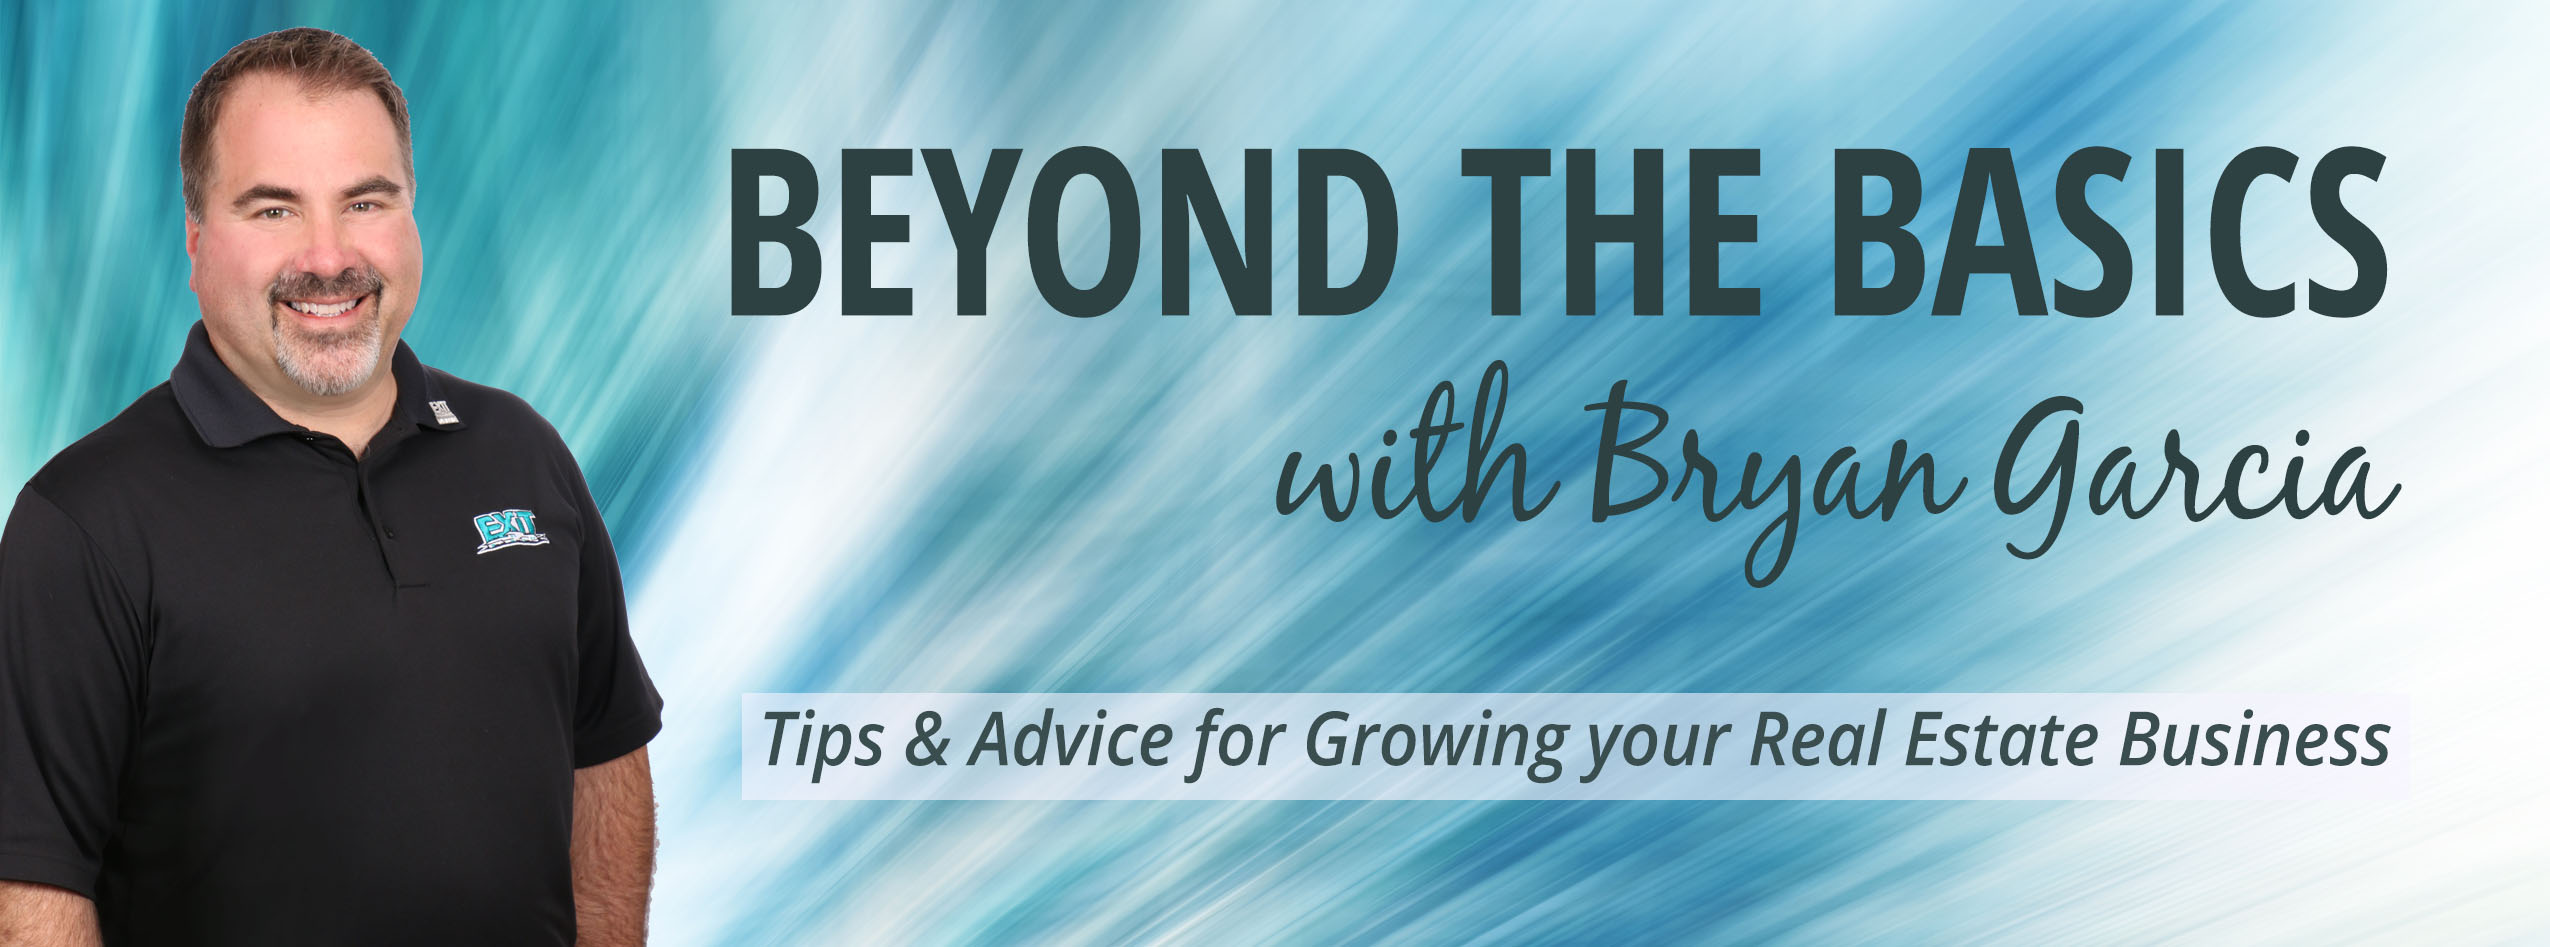 Beyond the Basics with Bryan Garcia: Mobile Business Card